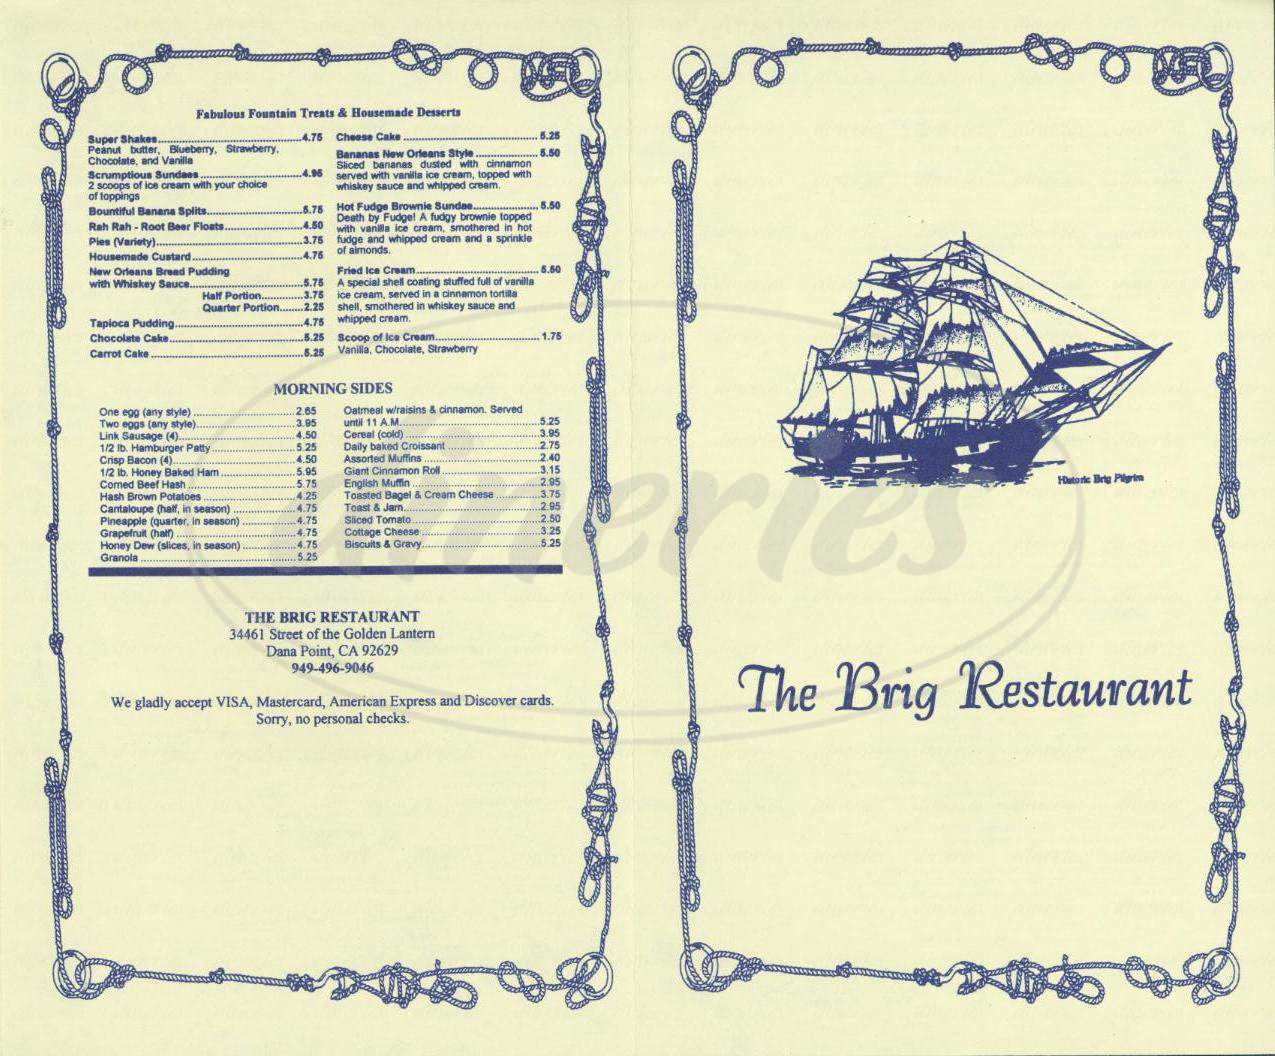 menu for The Brig Restaurant